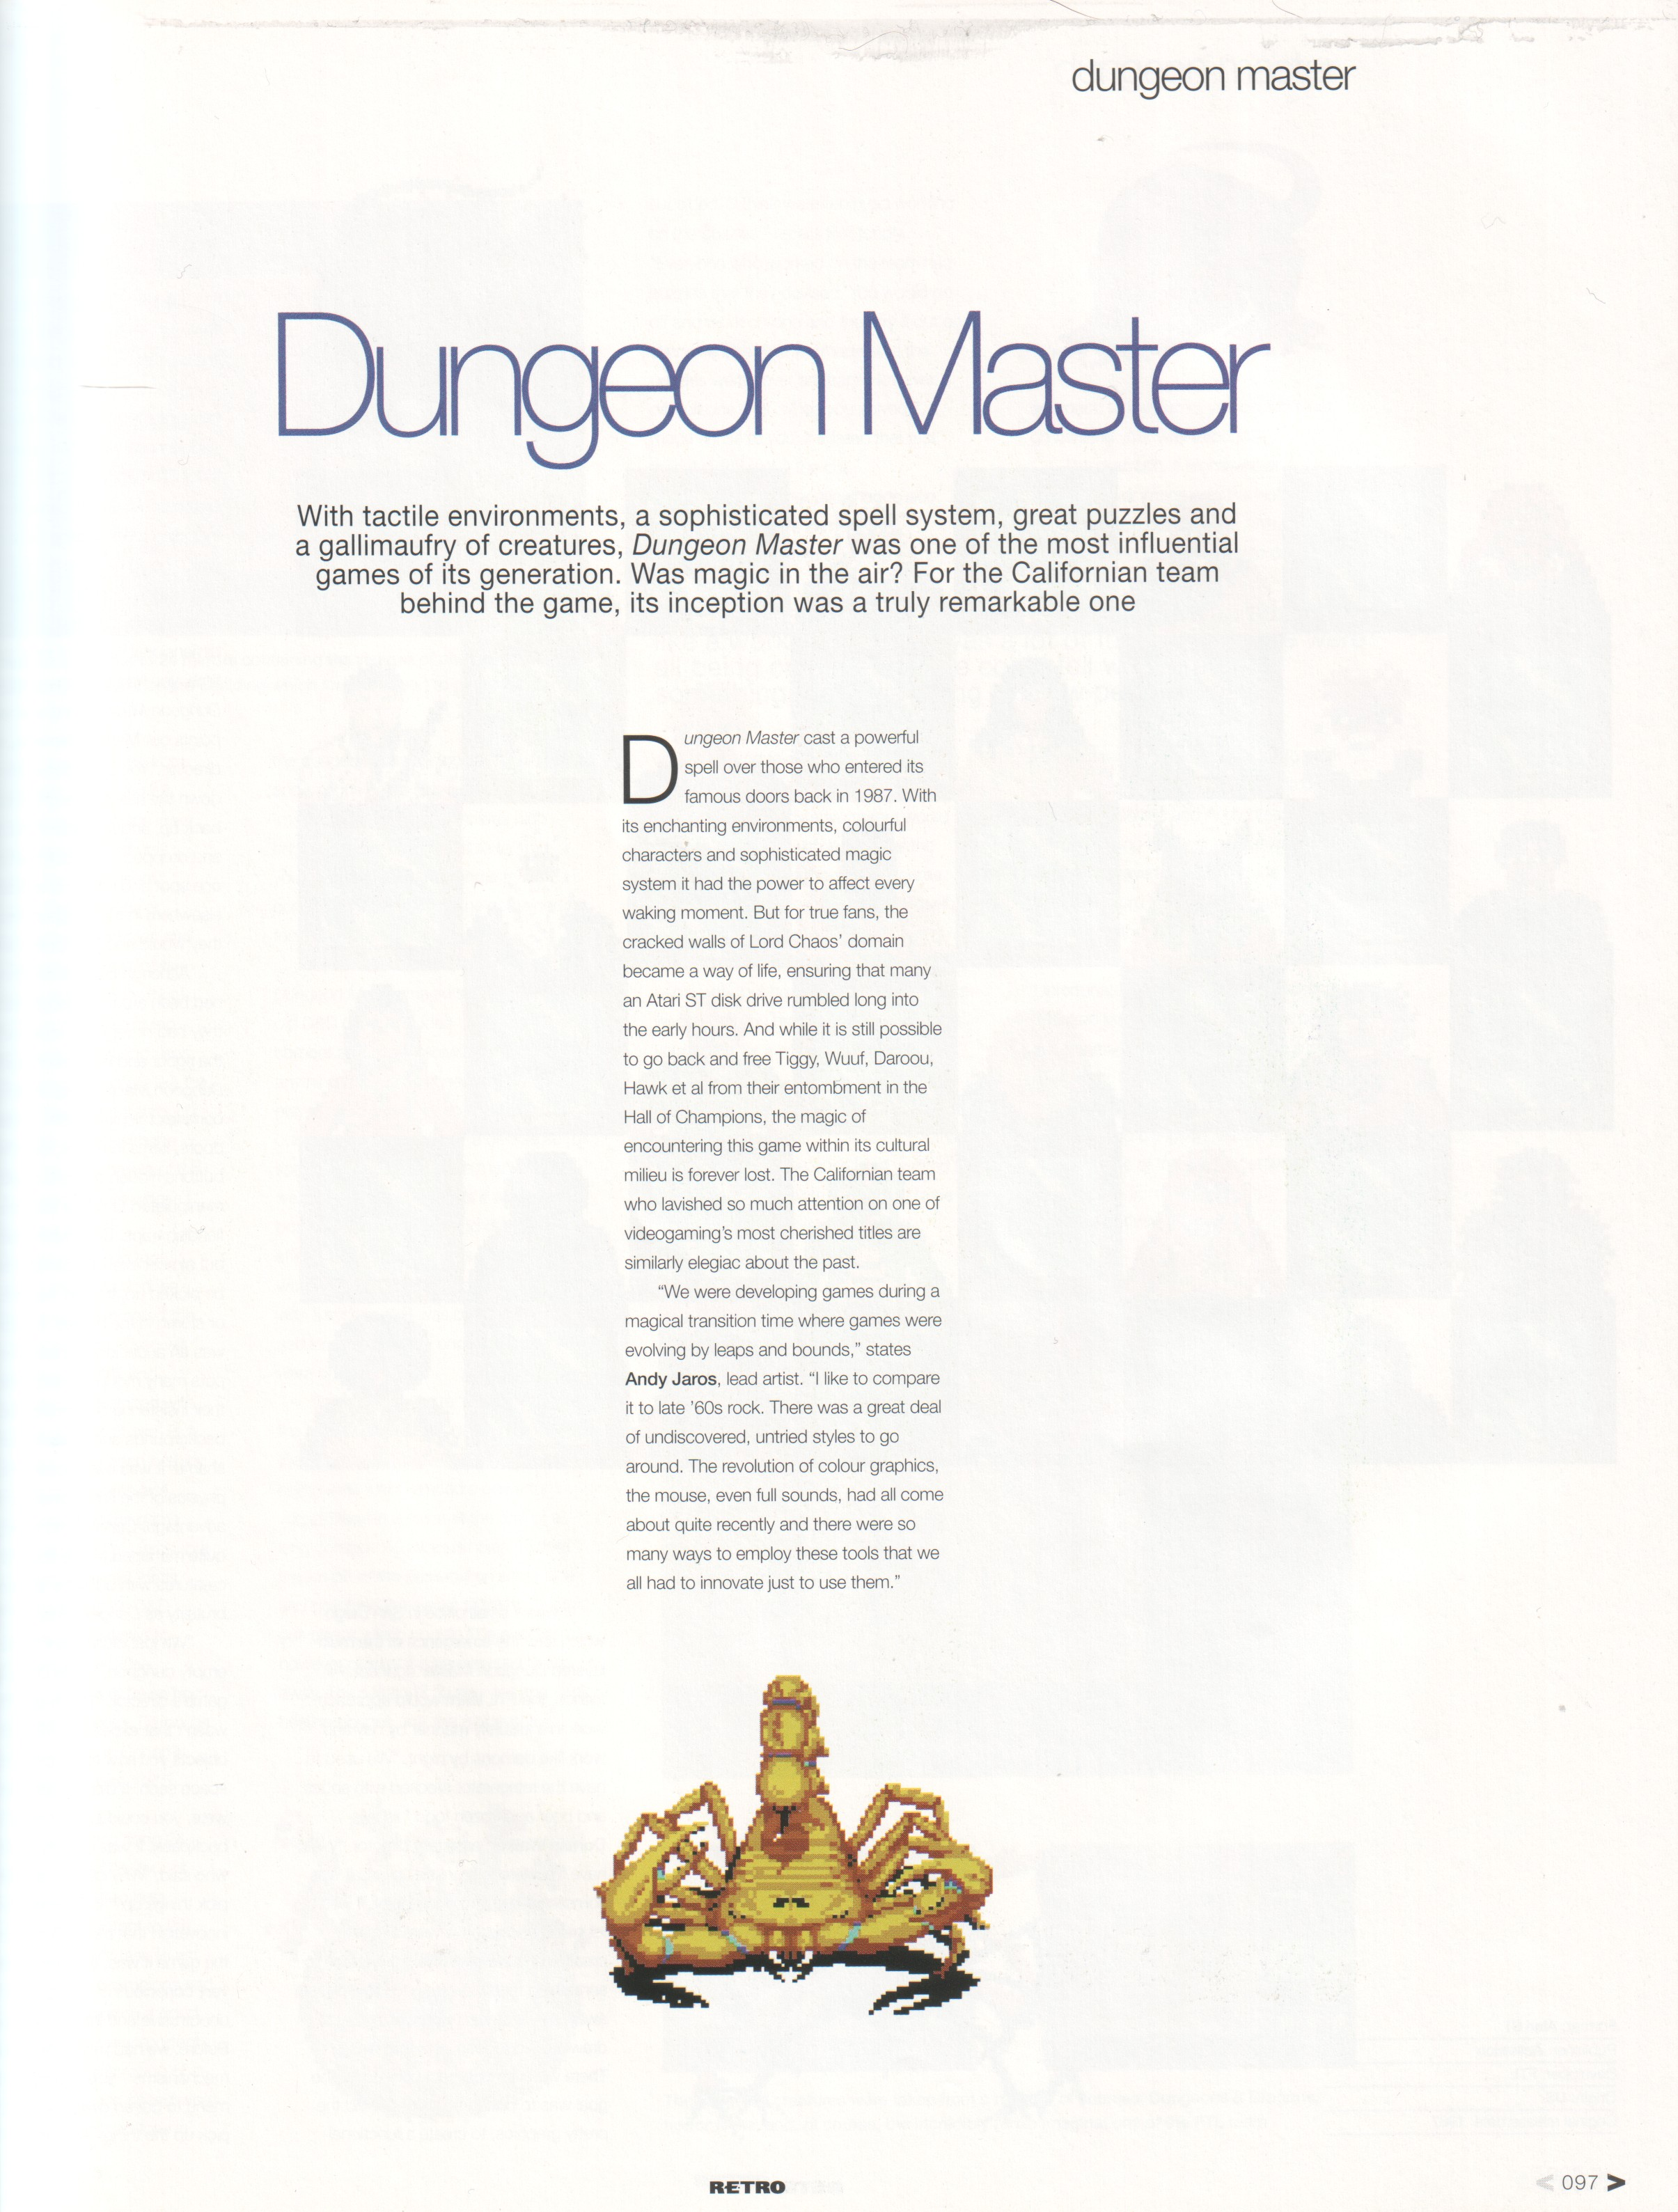 Dungeon Master Article published in British magazine 'Edge Presents Retro The Making Of Special', February 2003, Page 97